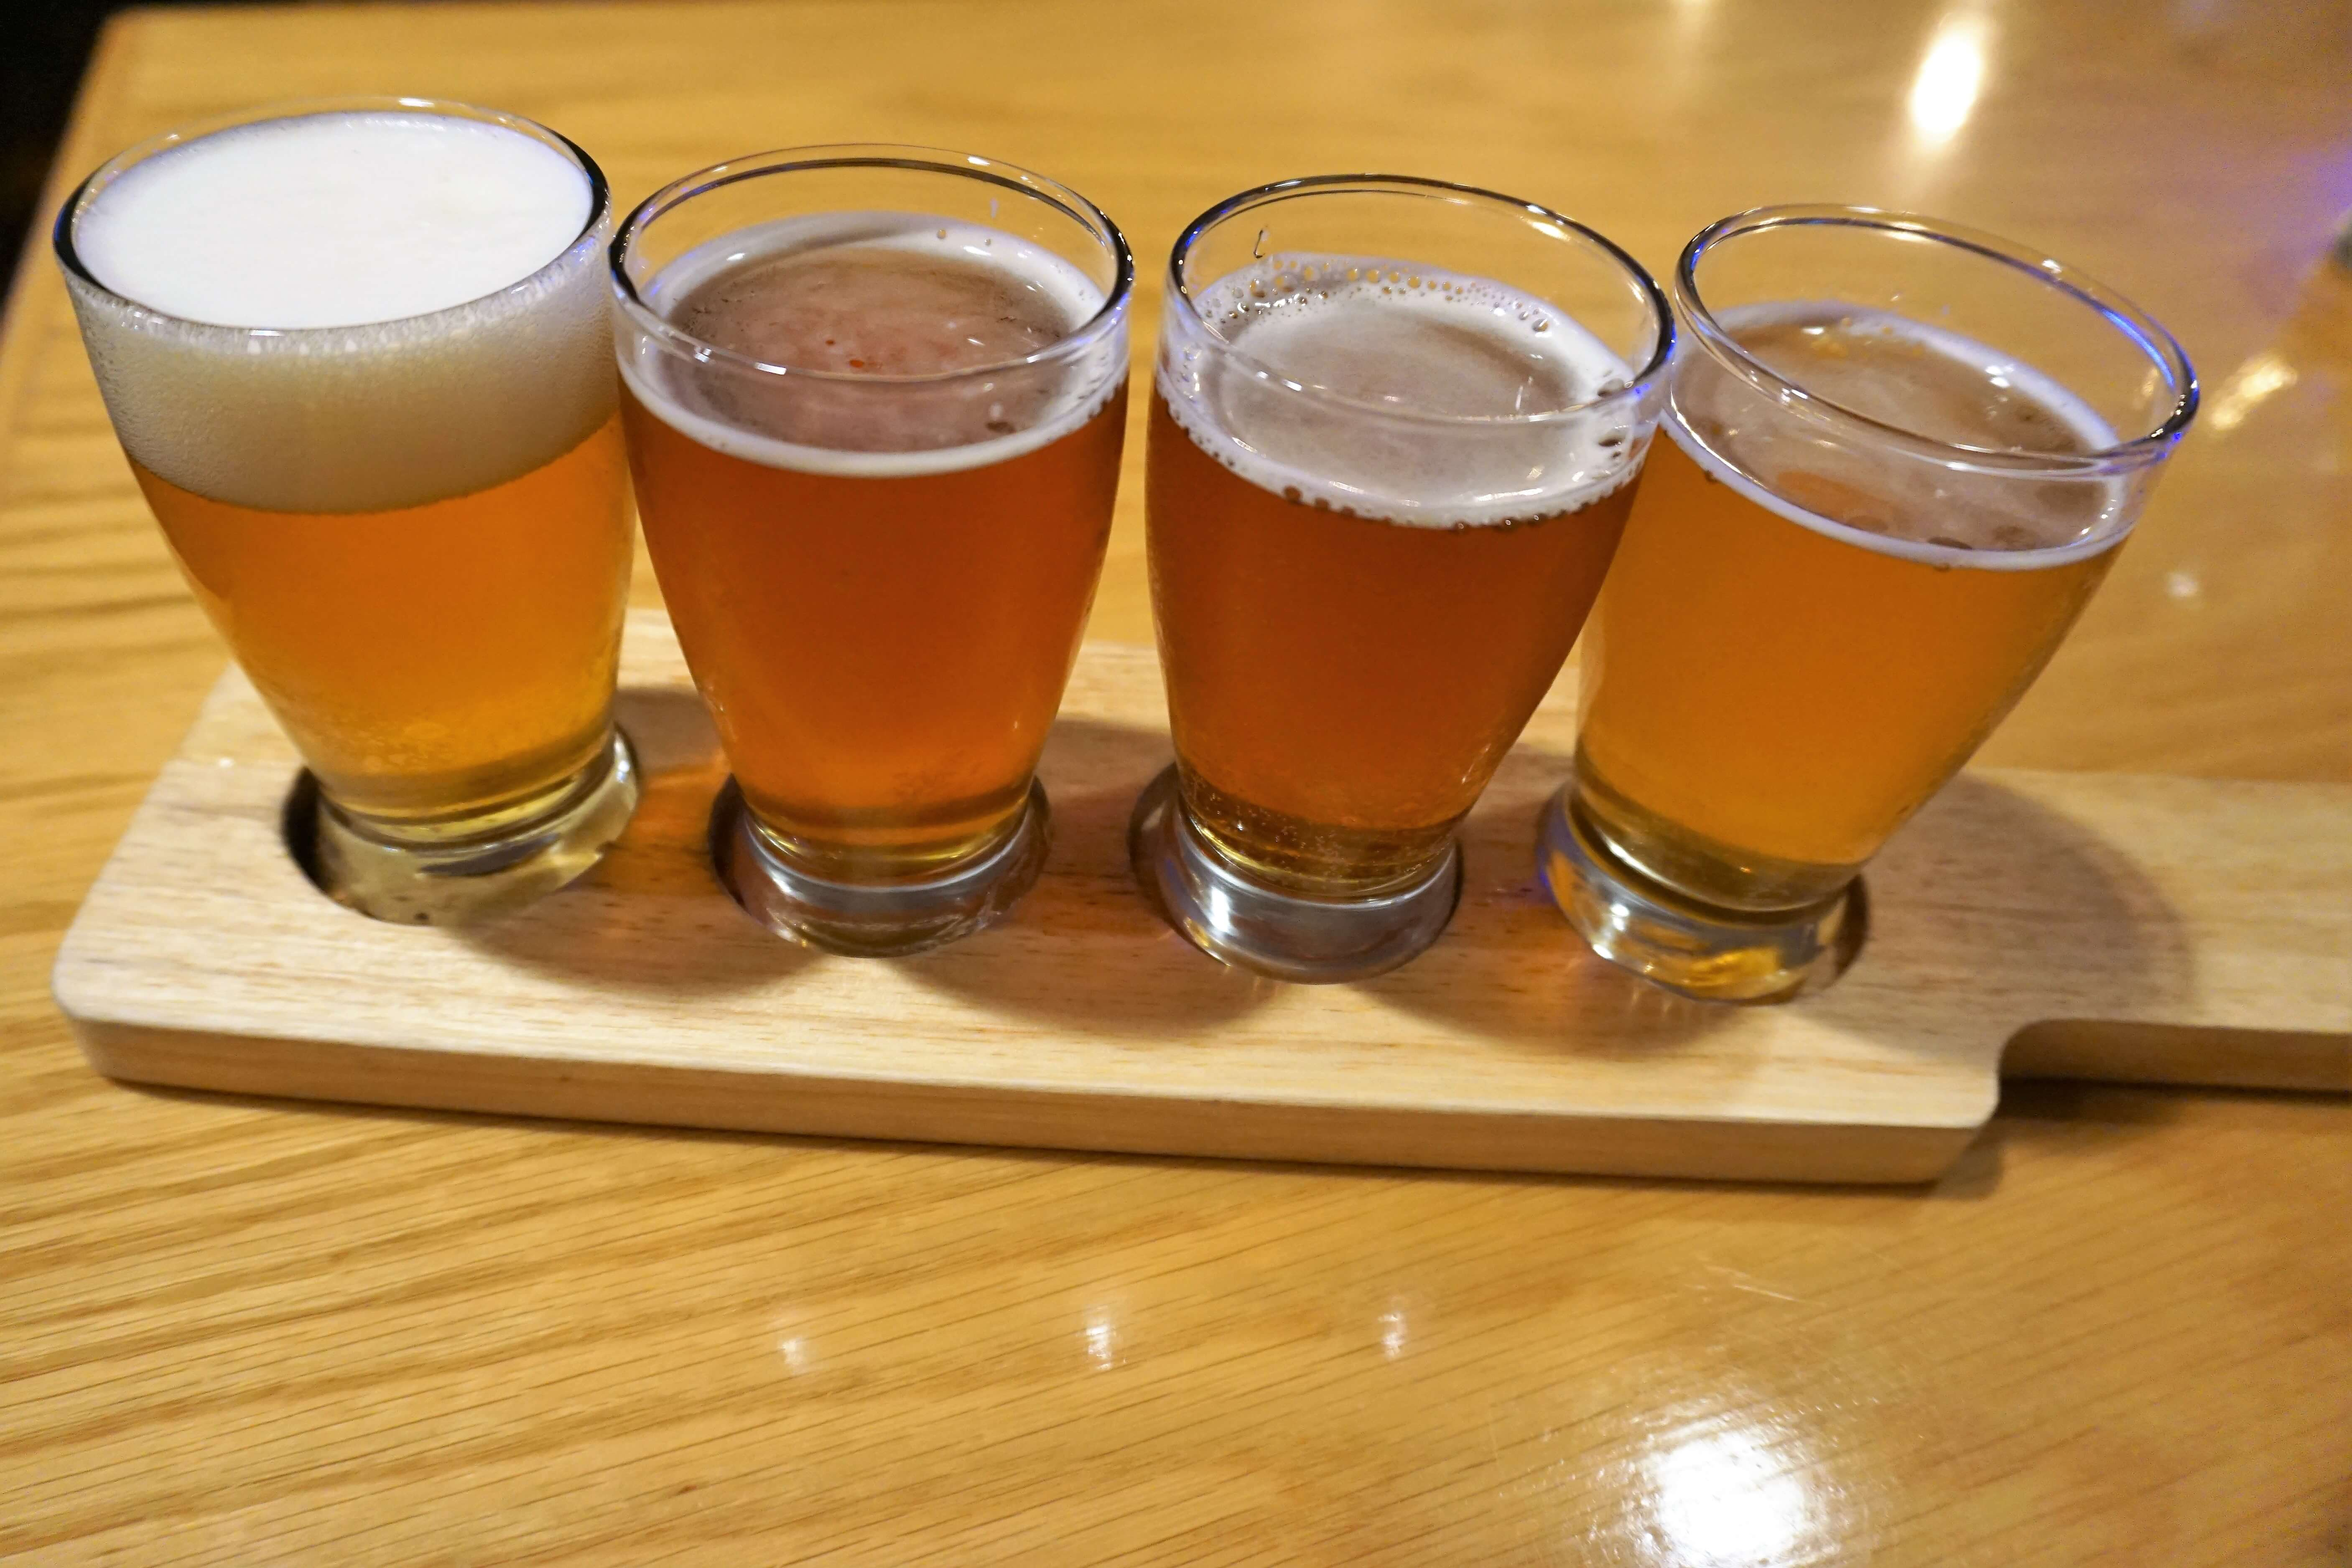 Four local beer samples at Carey's Brew House in Corning New York